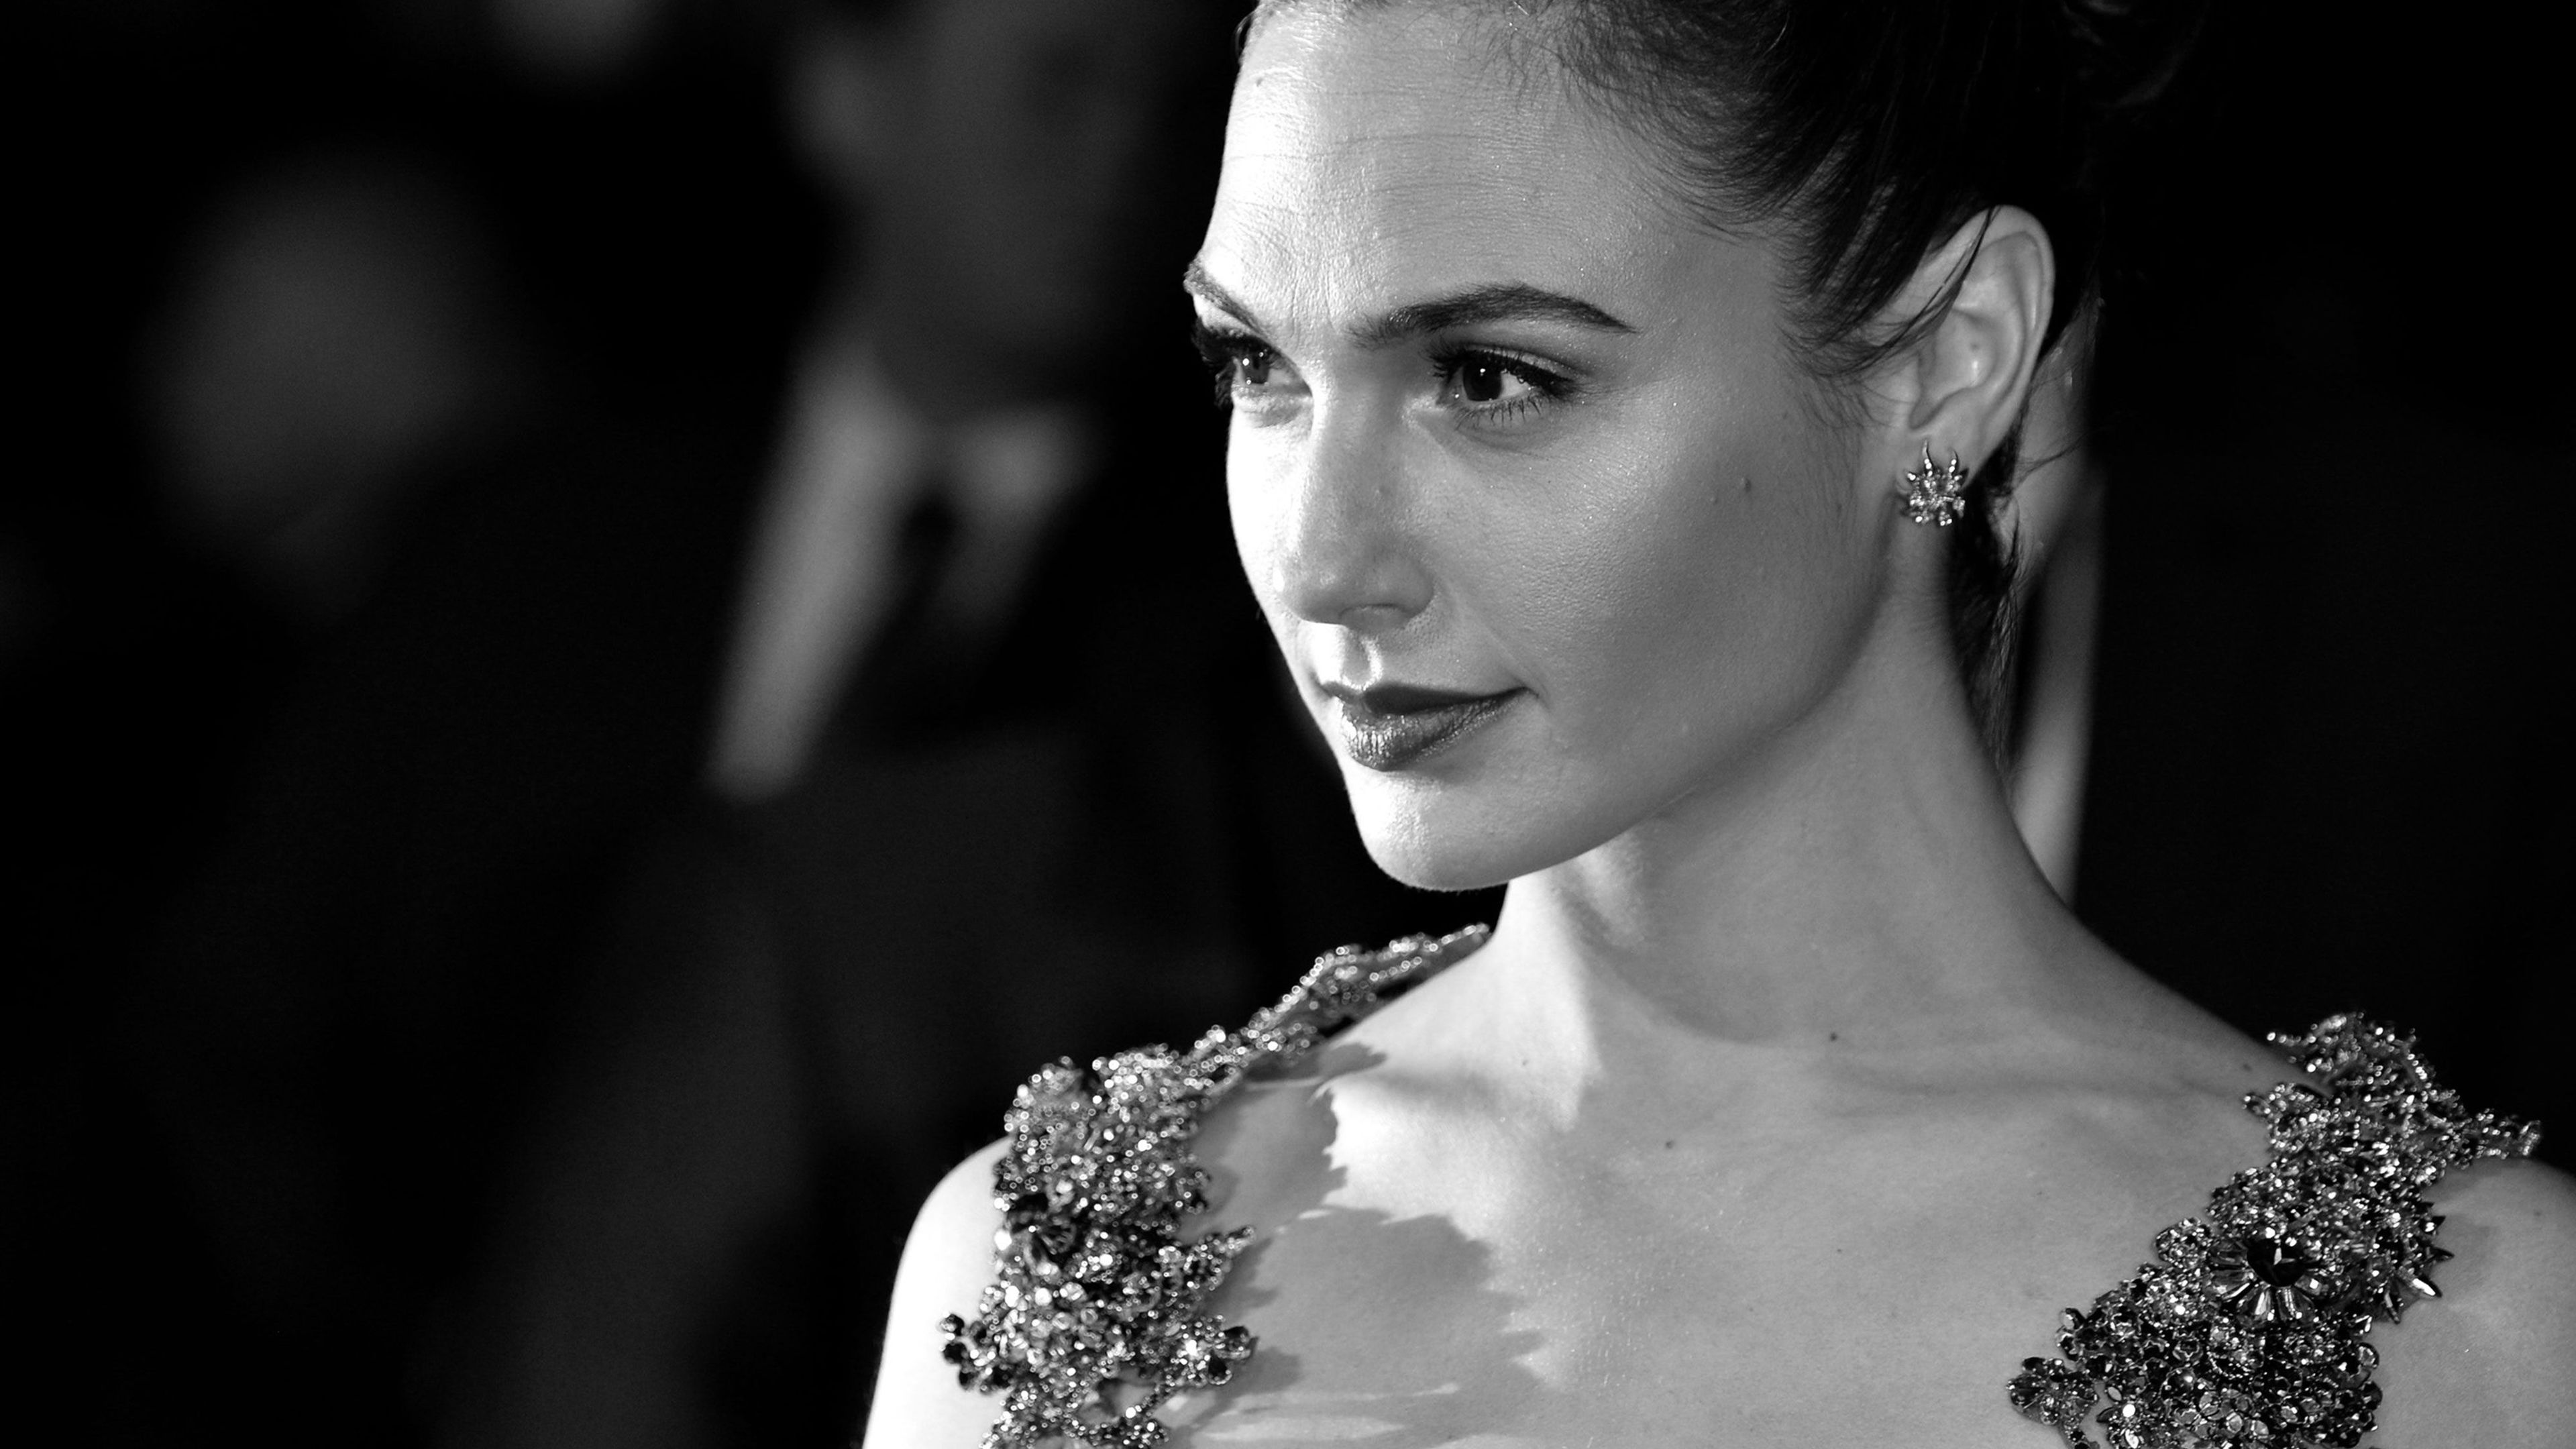 gal gadot monochrome 4k 1536862932 - Gal Gadot Monochrome 4k - monochrome wallpapers, hd-wallpapers, girls wallpapers, gal gadot wallpapers, celebrities wallpapers, black and white wallpapers, 4k-wallpapers